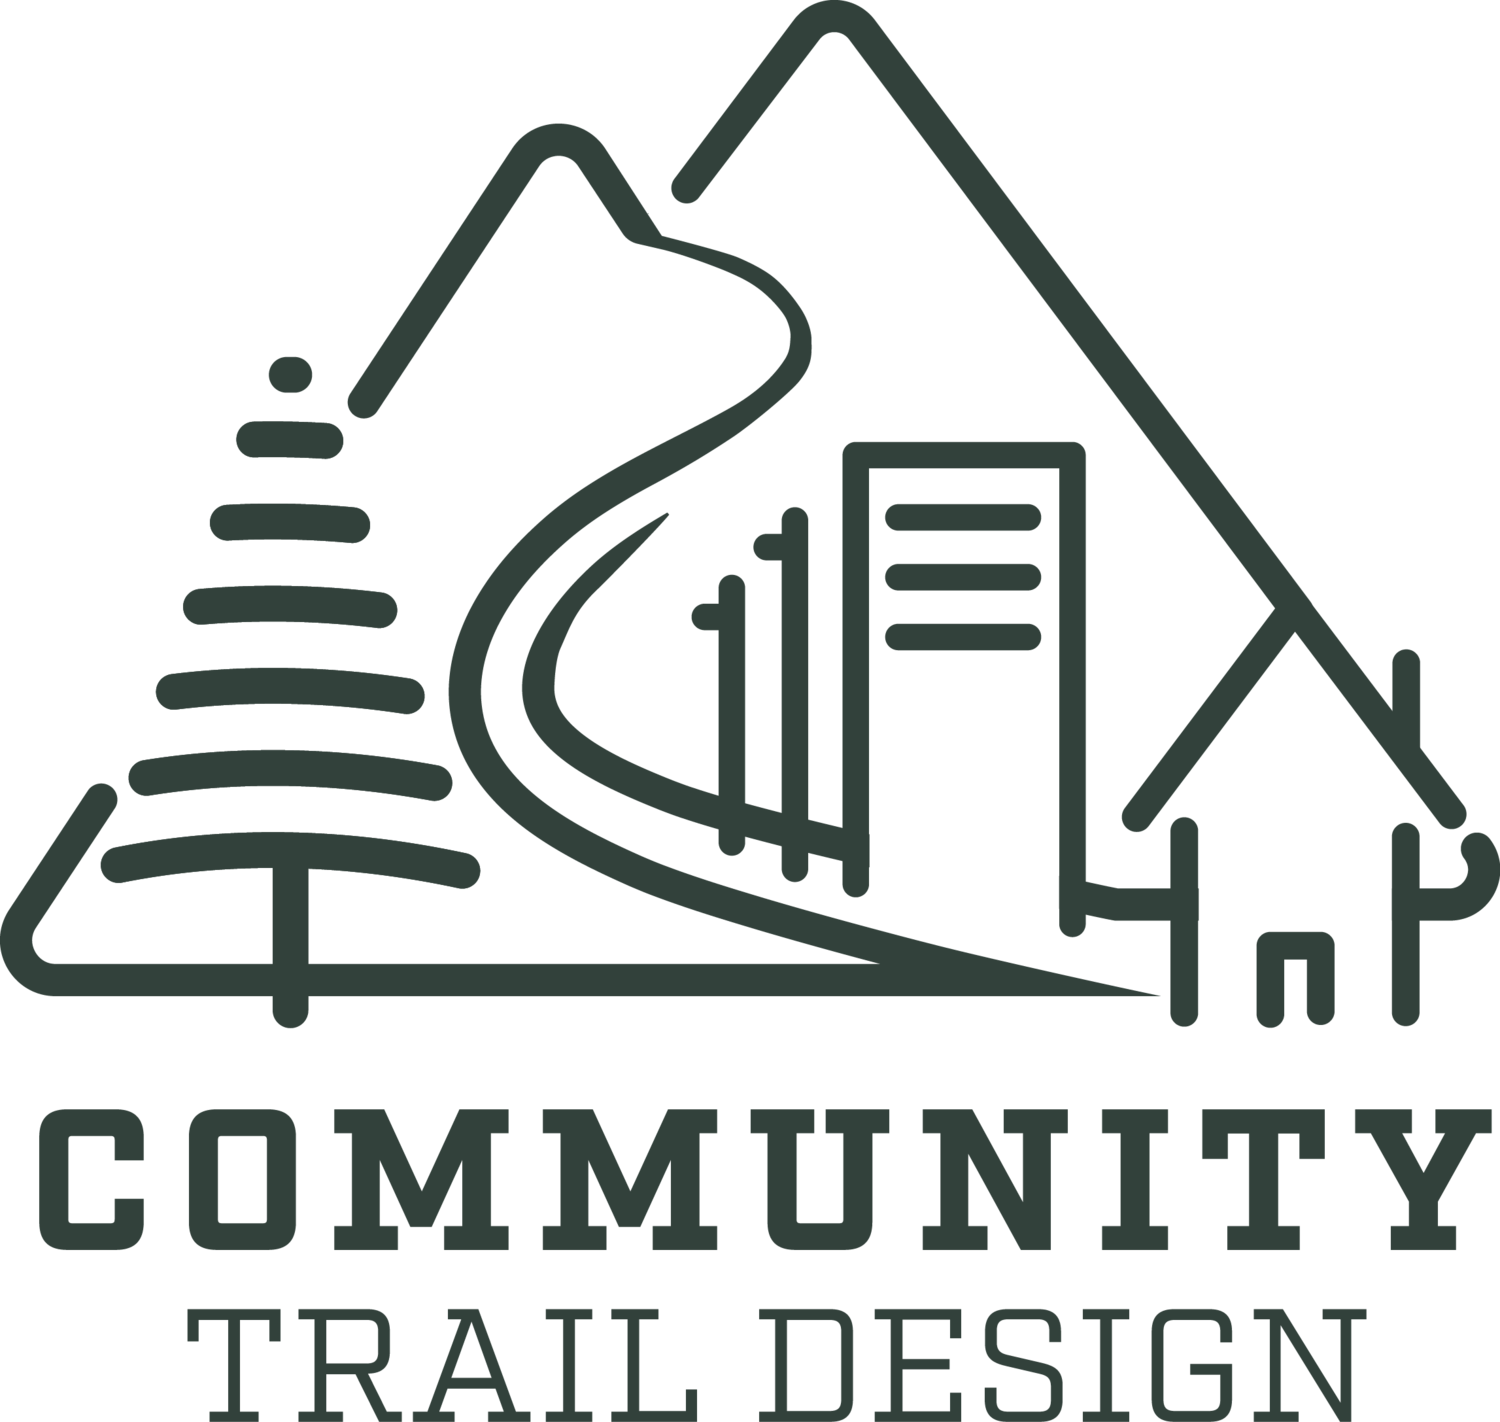 Community Trail Design